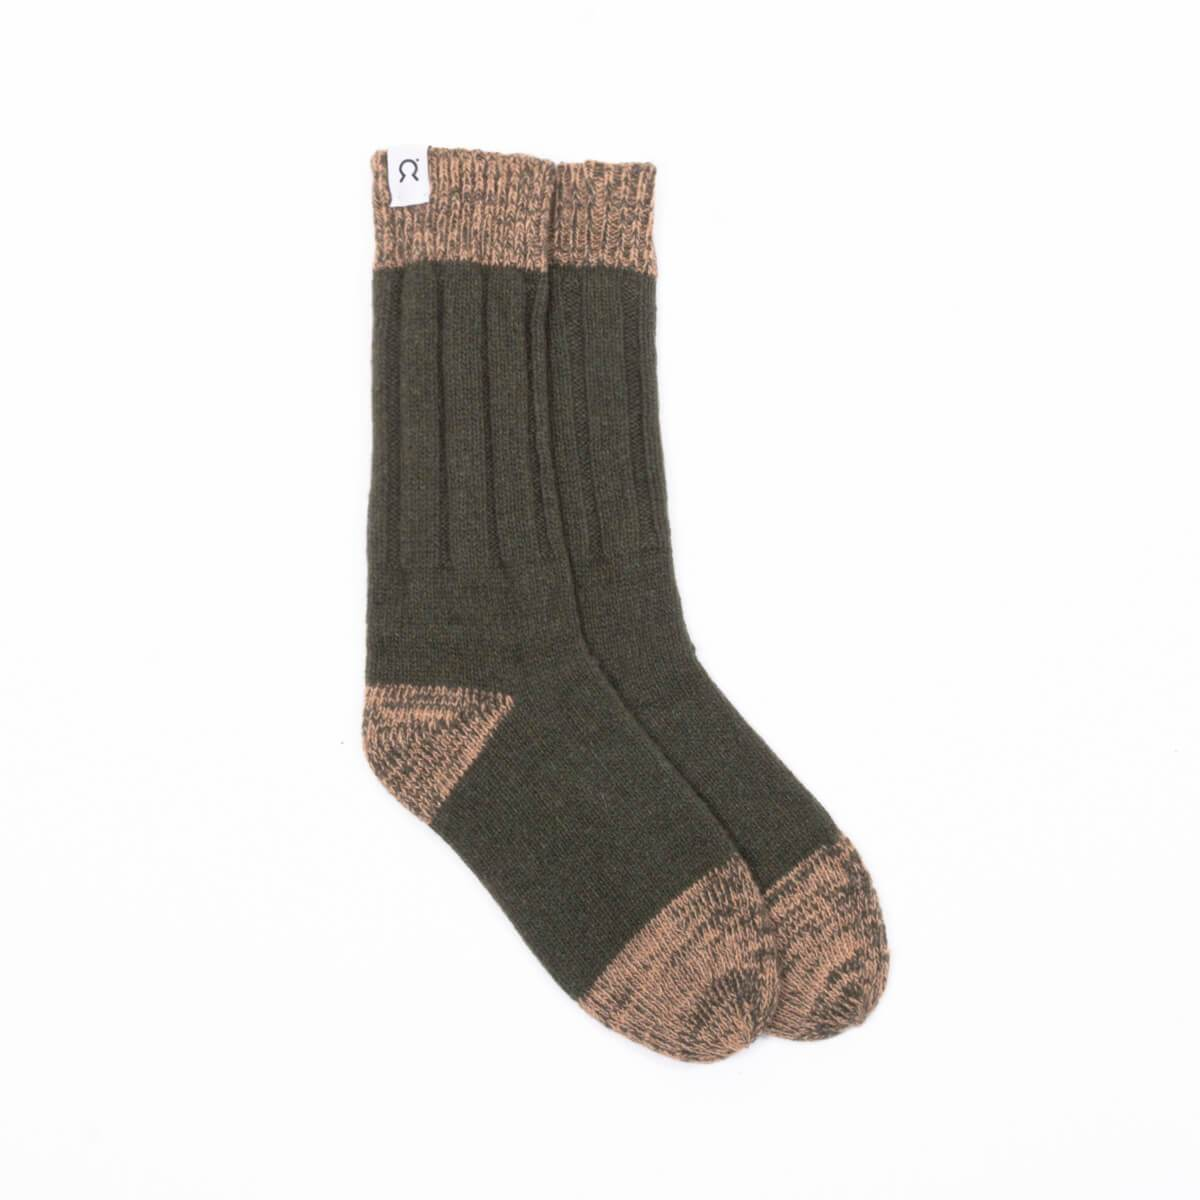 Recycled cashmere socks Ettore